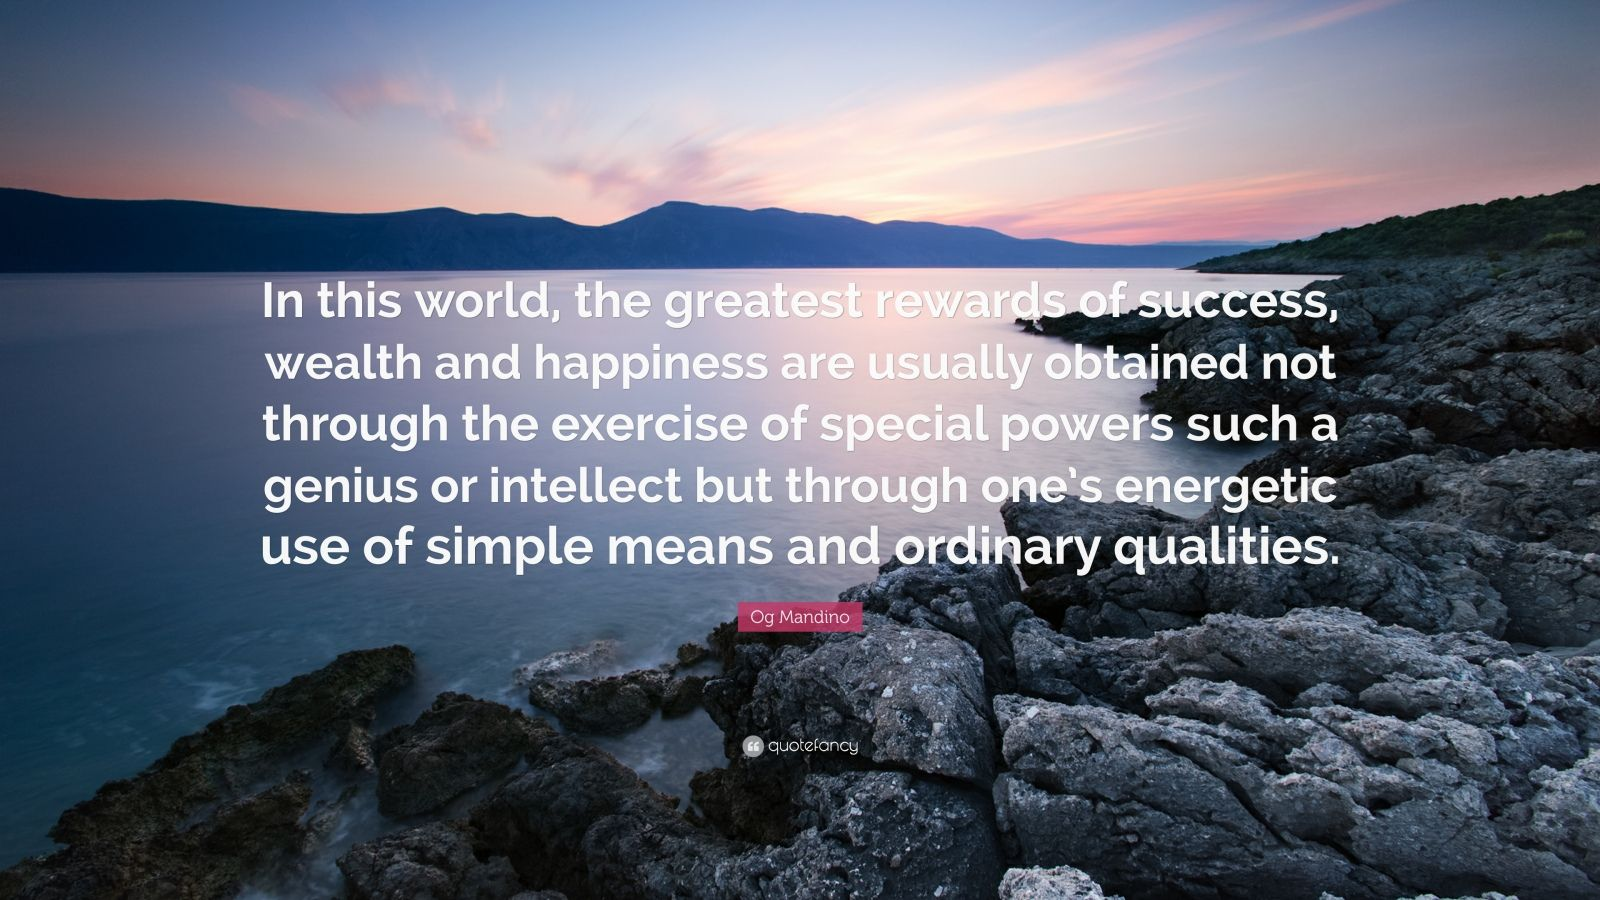 """Og Mandino Quote: """"In this world, the greatest rewards of success, wealth and happiness are usually obtained not through the exercise of special powers such a genius or intellect but through one's energetic use of simple means and ordinary qualities."""""""